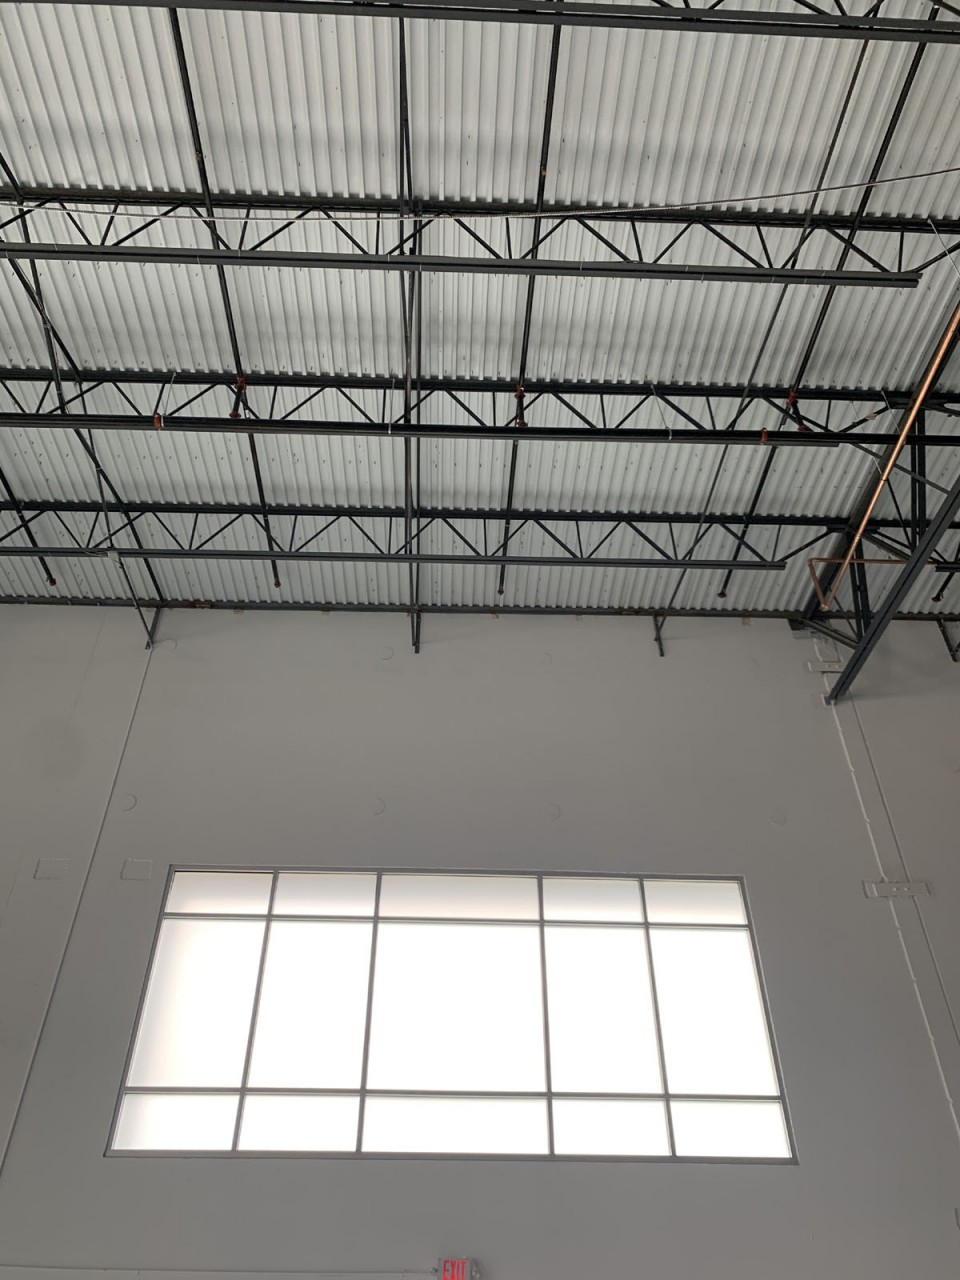 White Frost on glass in warehouse space